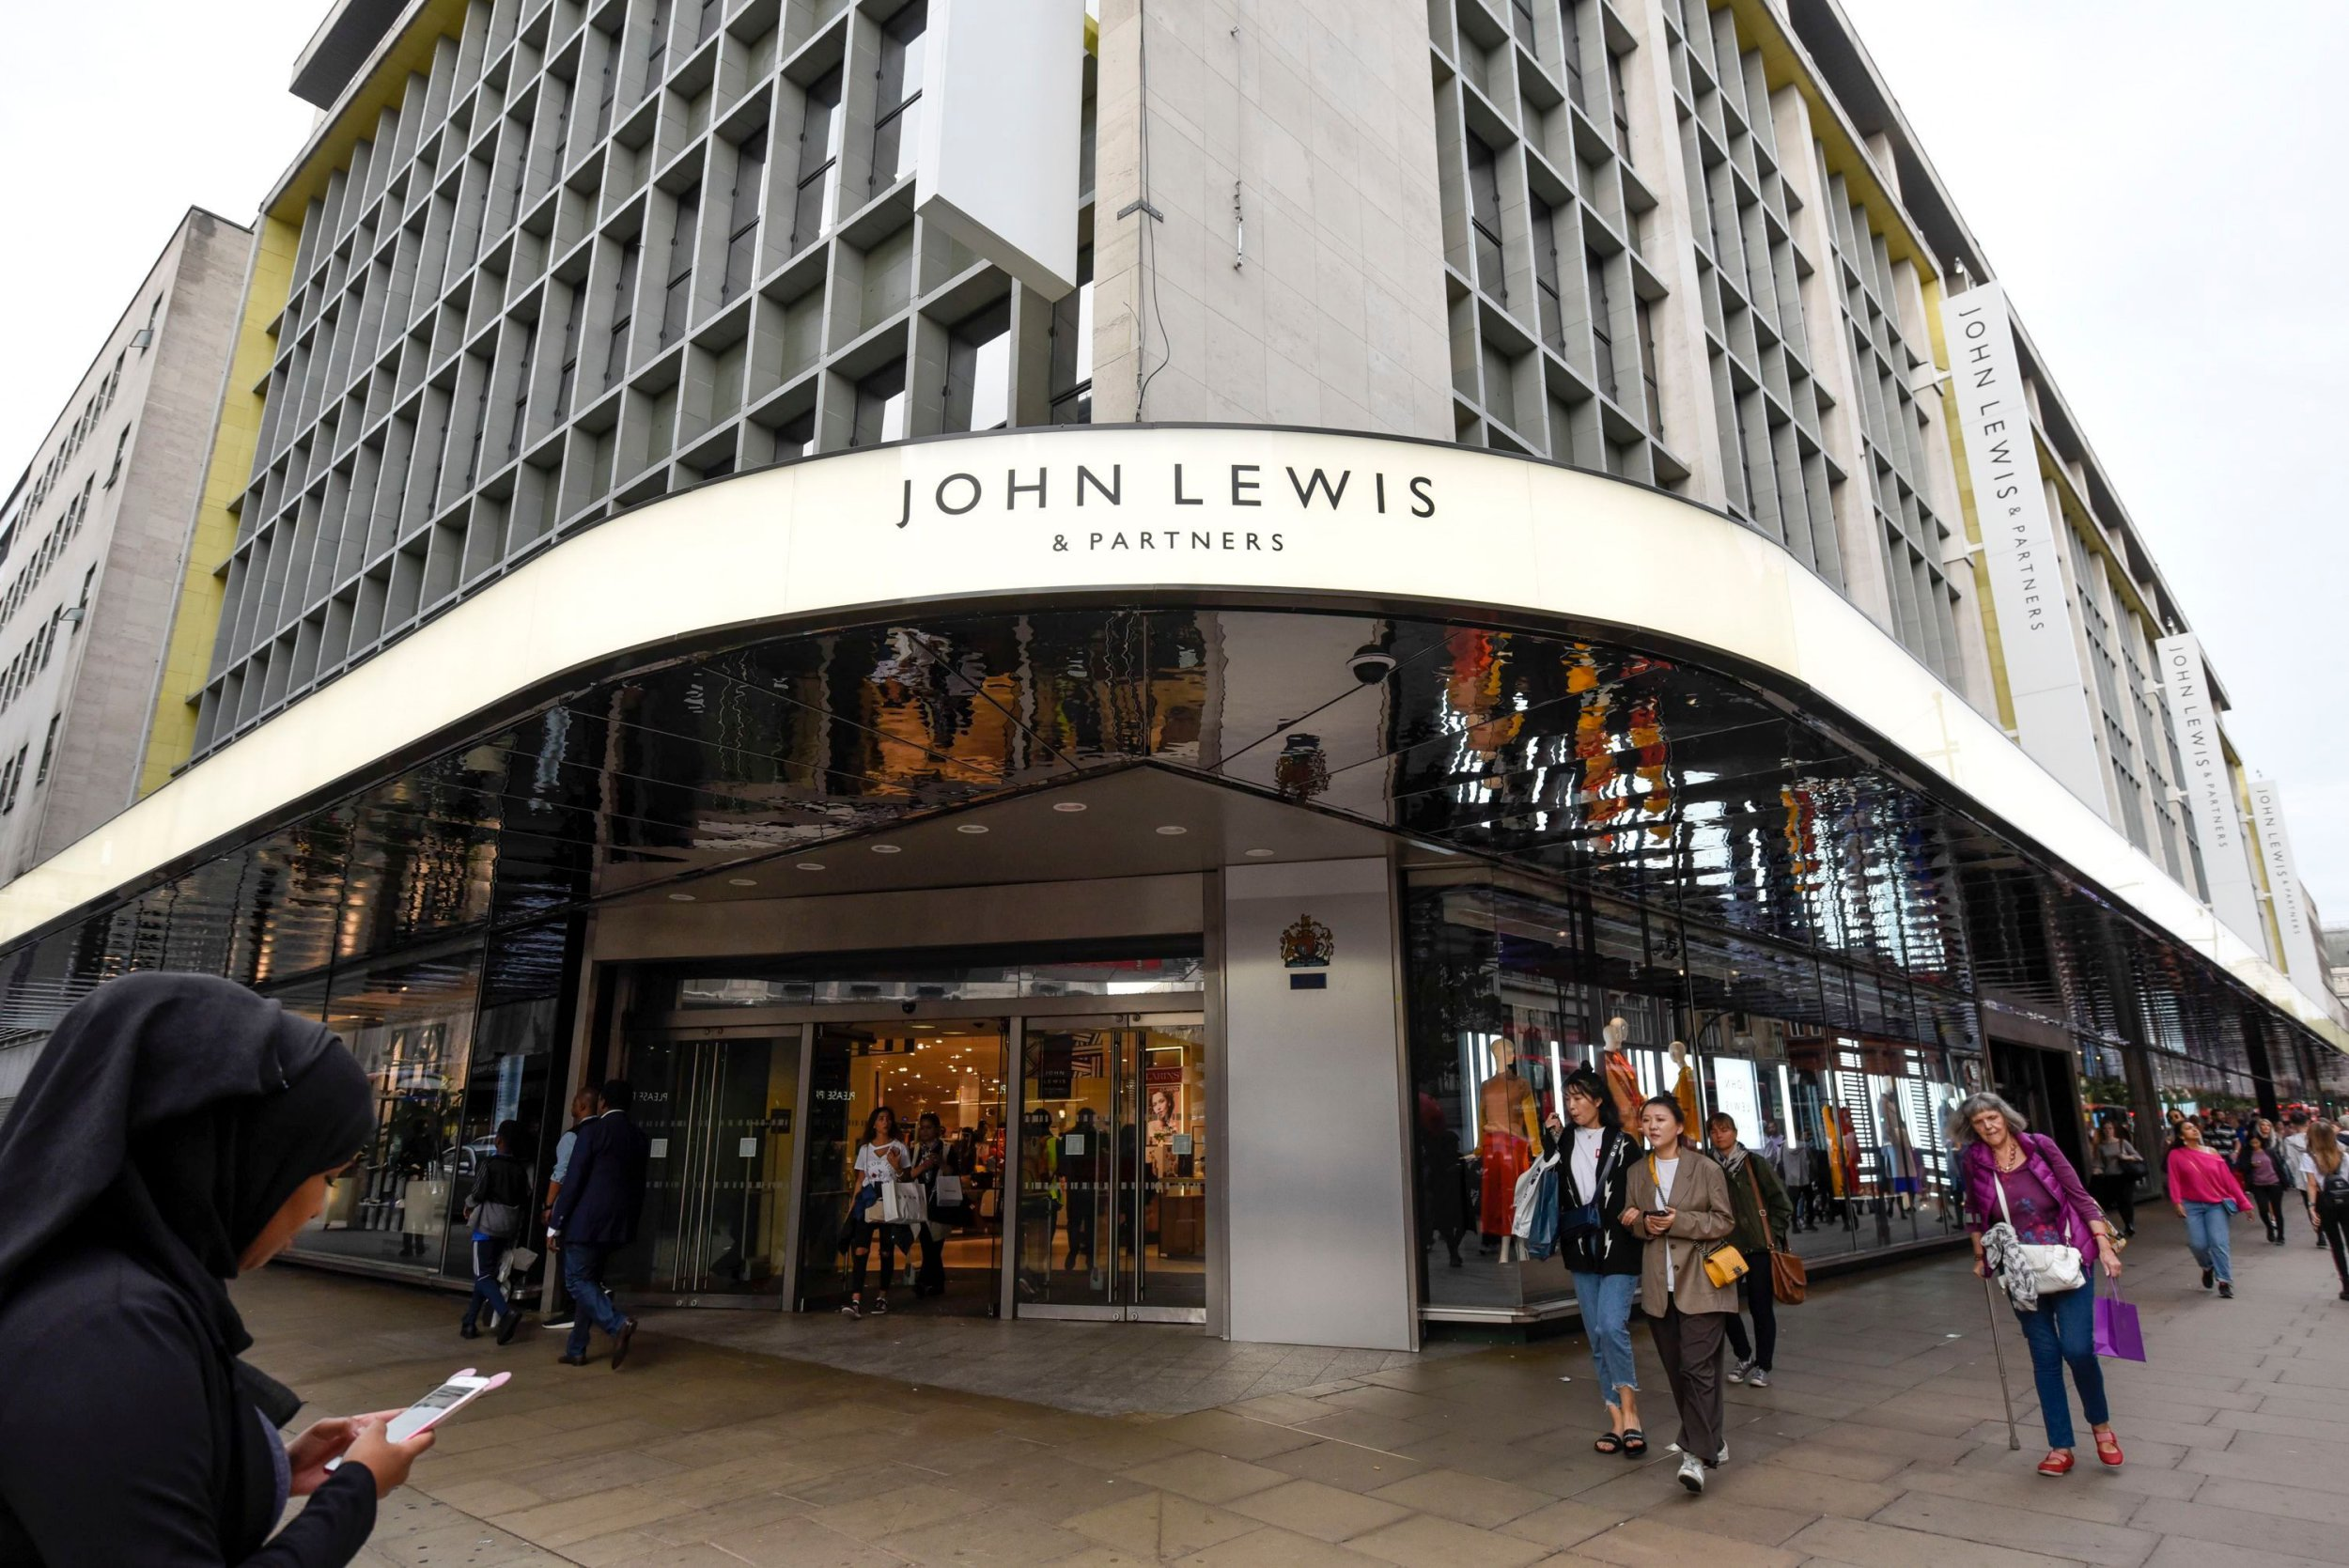 When do the John Lewis Black Friday offers start and what to expect?